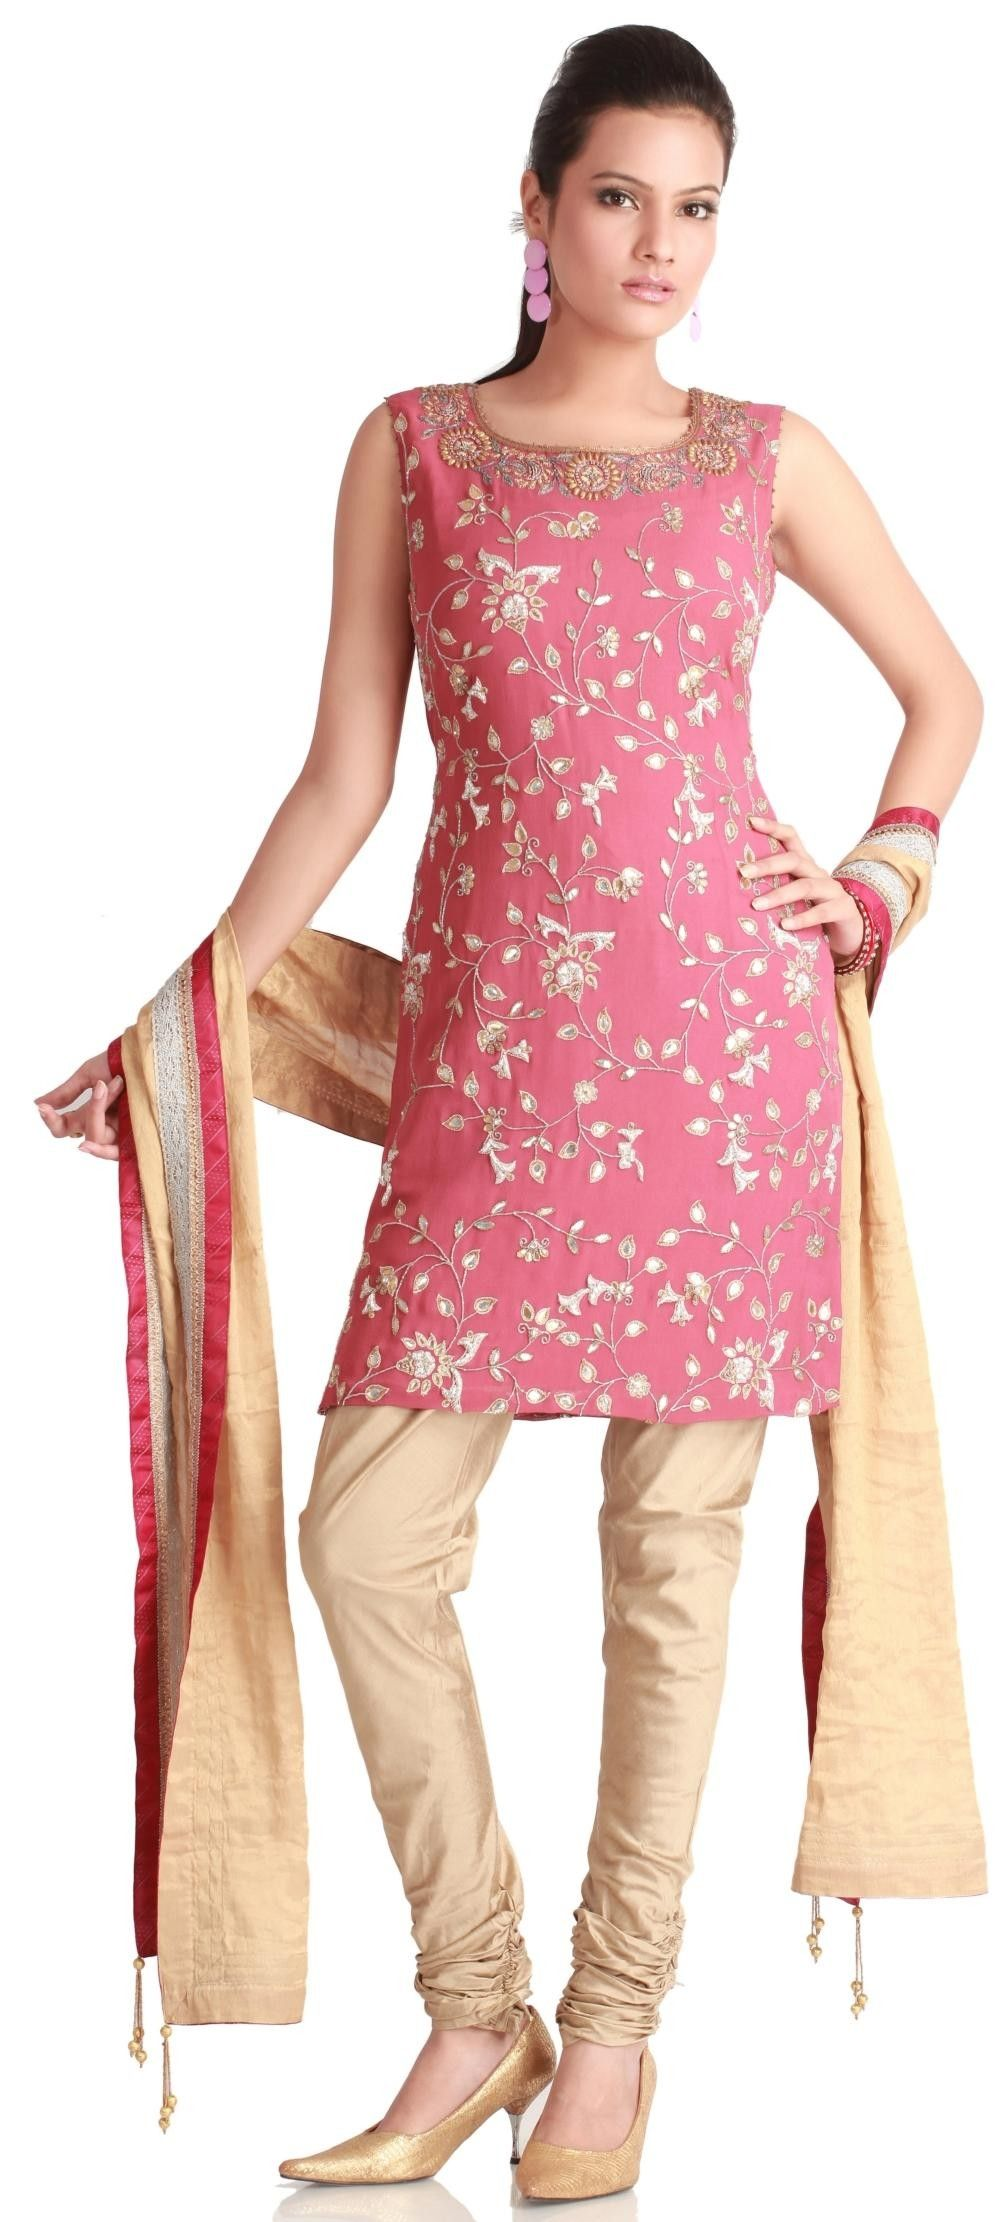 indian female clothing - Google Search   others4   Pinterest